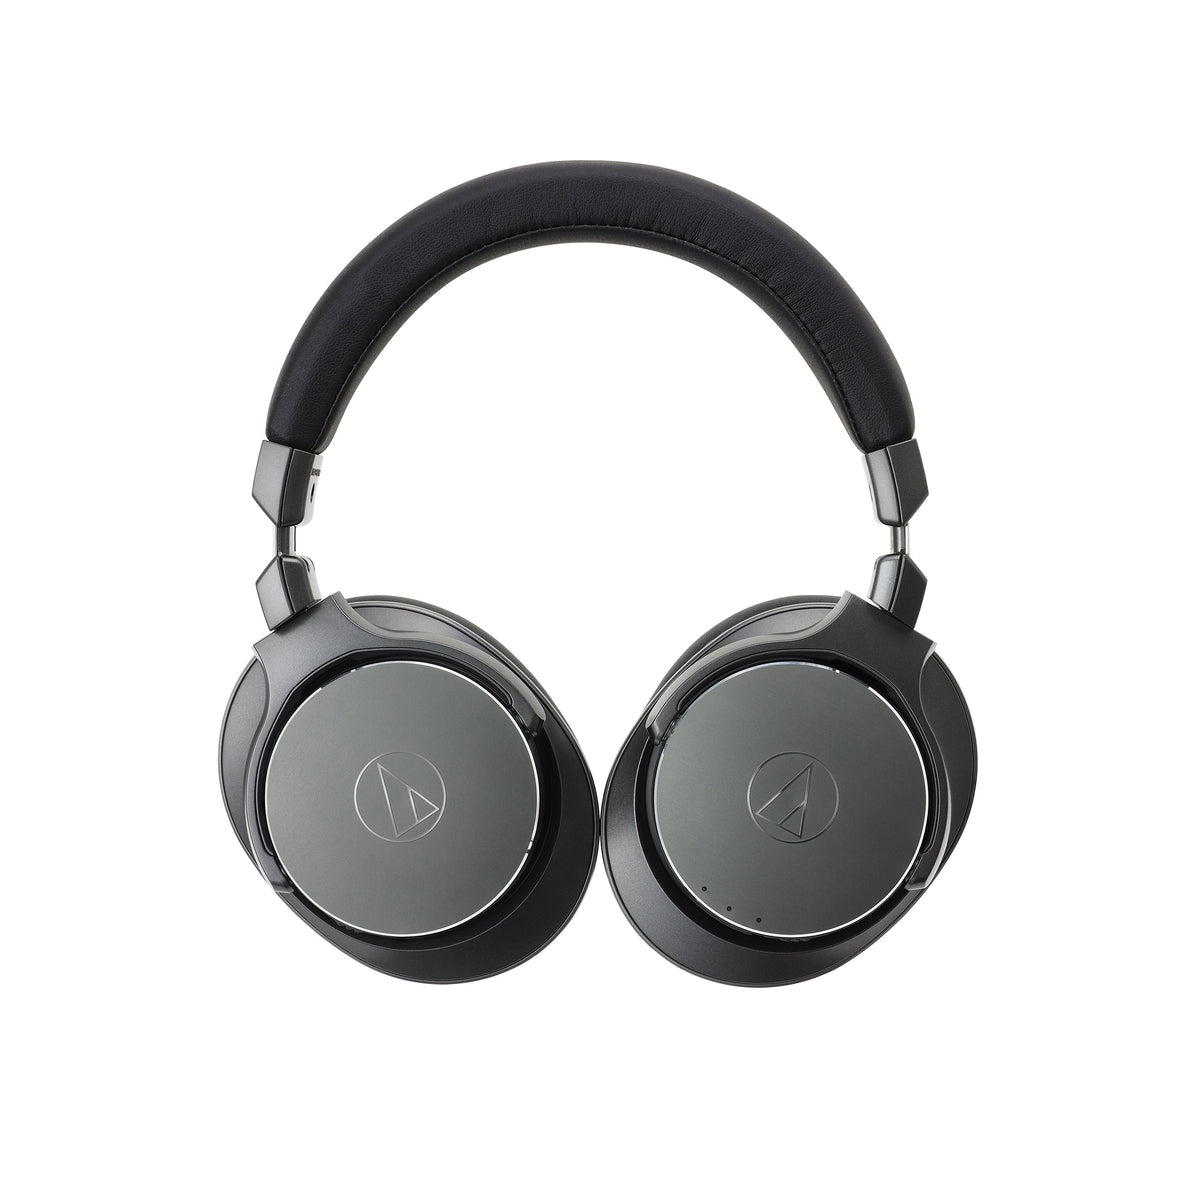 Audio-Technica: ATH-DSR7BT Wireless Over-Ear Headphones